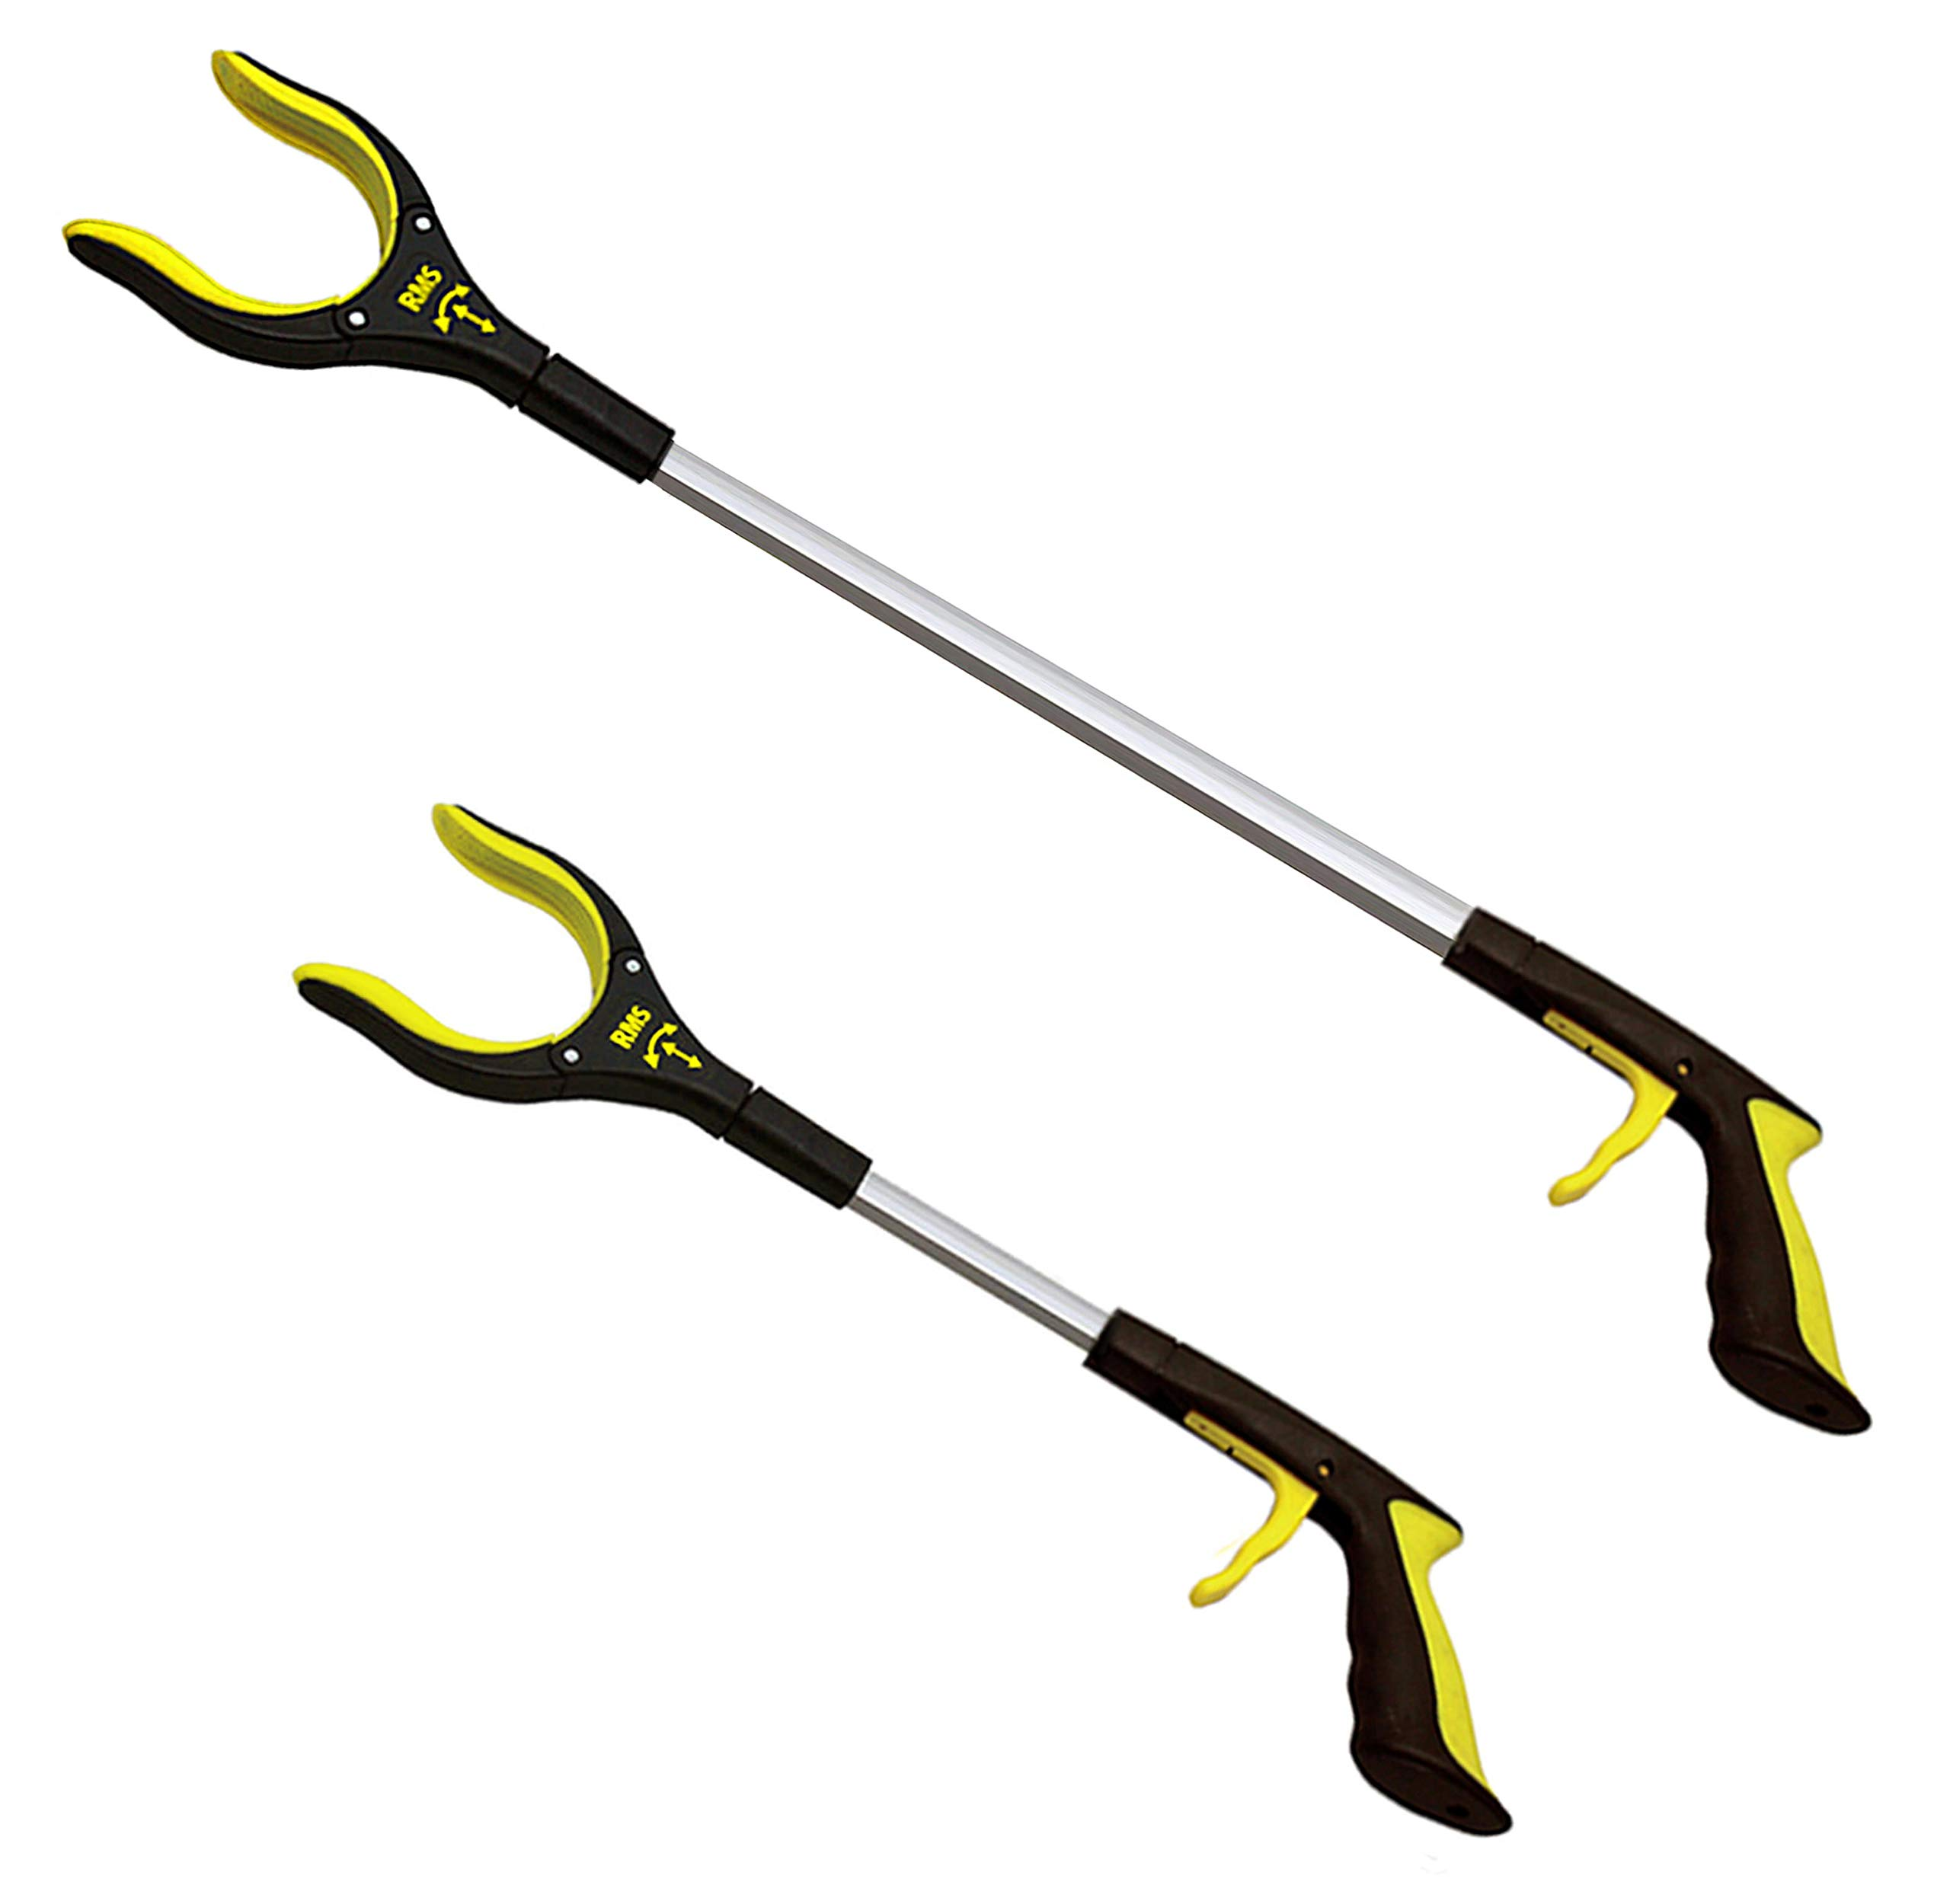 RMS 2-Pack 32'' and 19'' Grabber Reacher | Rotating Gripper | Mobility Aid Reaching Assist Tool | Trash Picker, Litter Pick Up, Garden Nabber, Arm Extension | Ideal for Wheelchair and Disabled